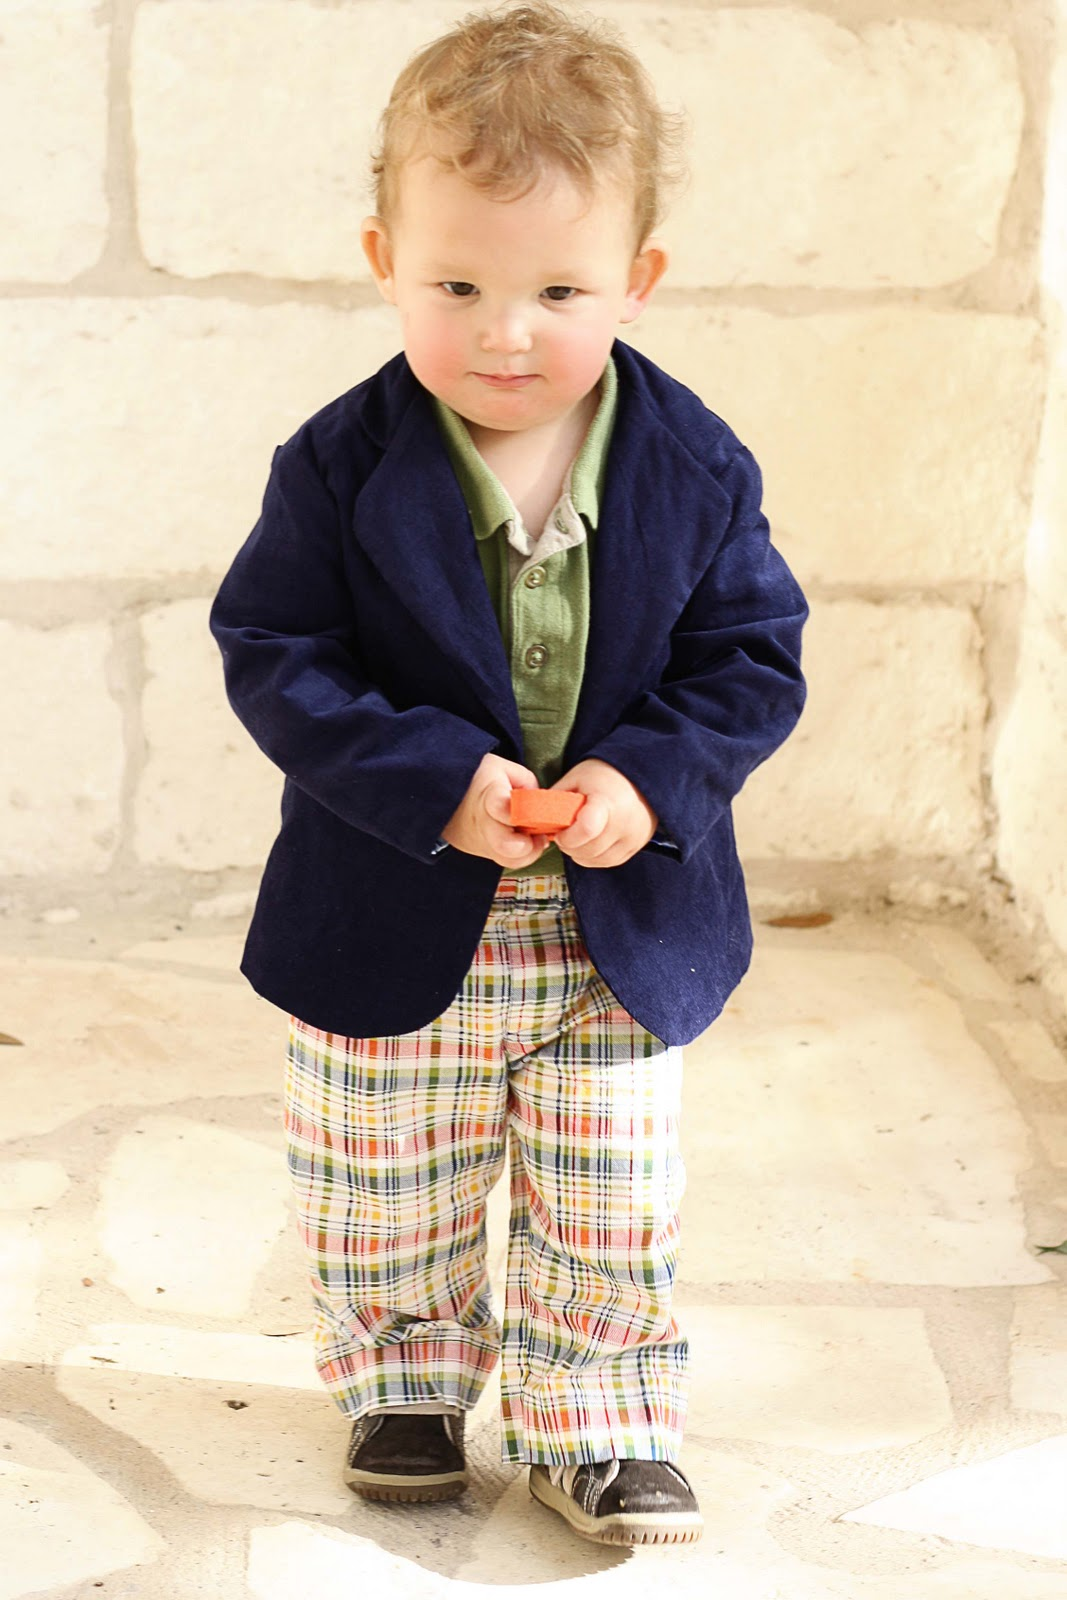 Toddler Baby Boy Blazers Coat,Infant Casual Gray Suit Jacket. by Boarnseorl. $ $ 24 90 Prime. FREE Shipping on eligible orders. Some sizes are Prime eligible. Luca Gabriel Toddler Boys' Single Breasted Corduroy Blazer Jacket. by Luca Gabriel. $ - $ $ 25 $ 31 97 Prime.